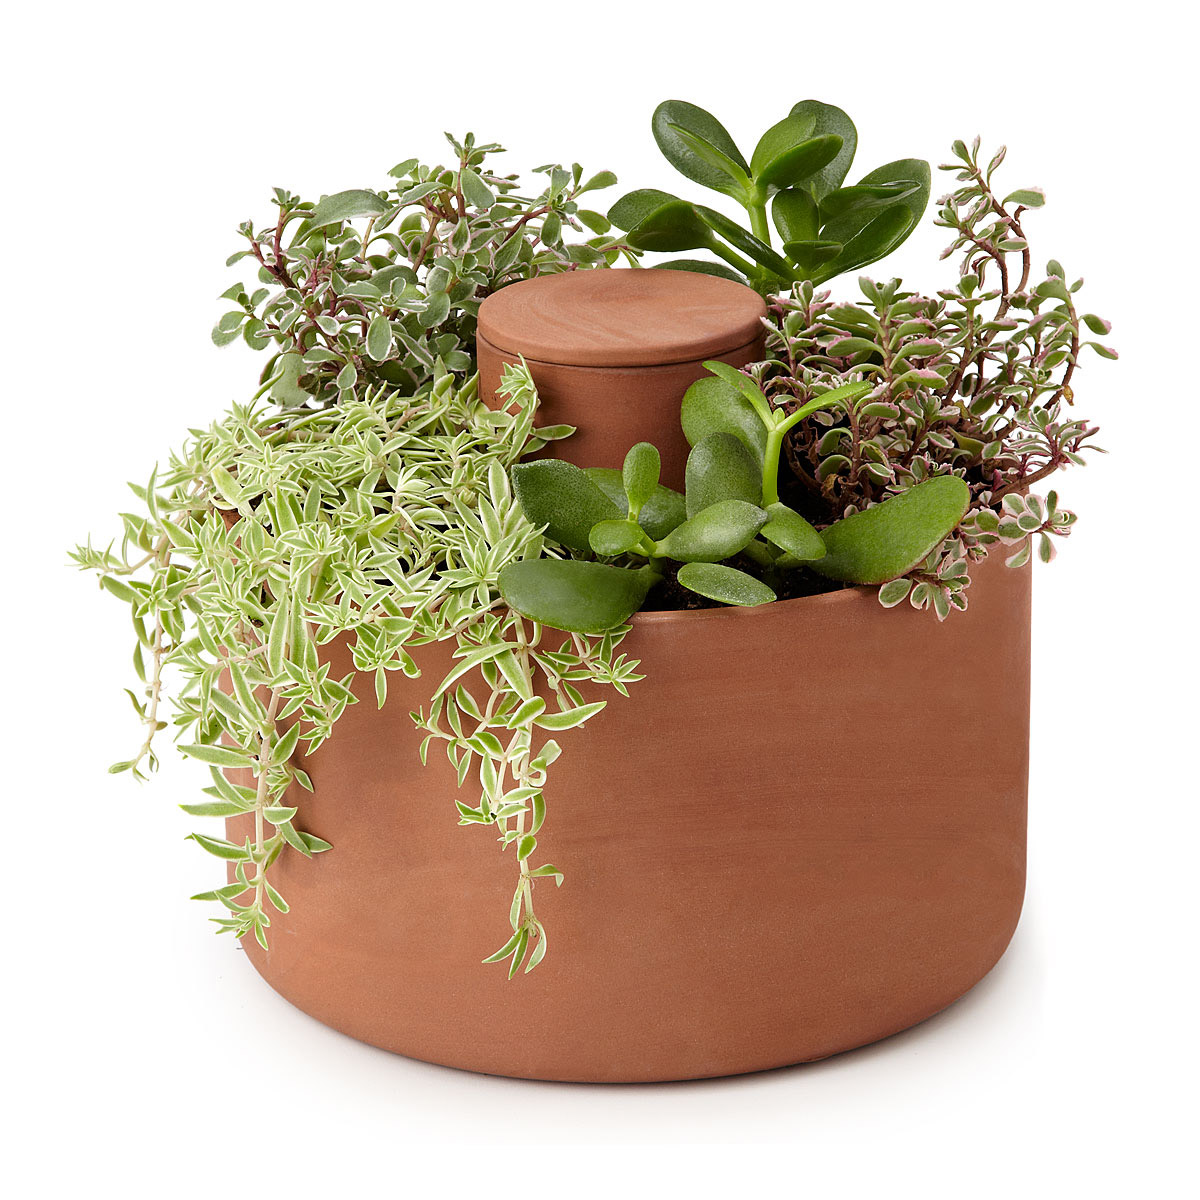 Herb Planter Pot Self Watering Herb And Succulent Planter The Green Head